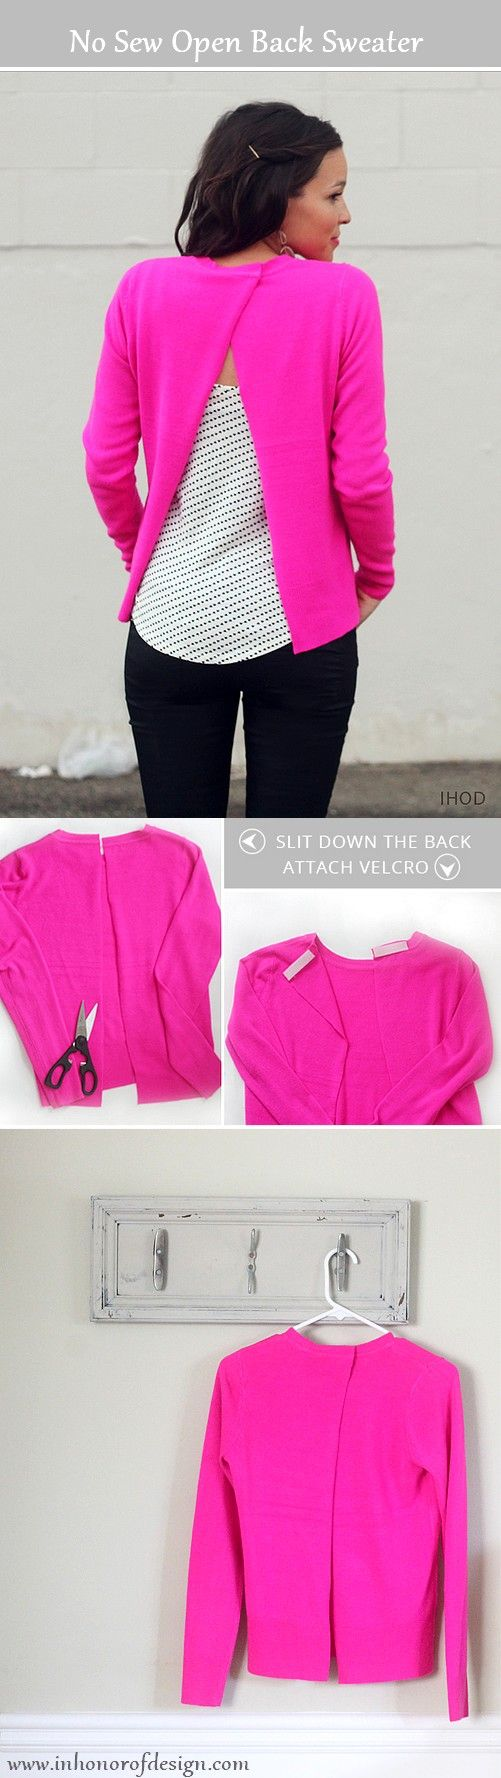   DIY by In Honor of Design   Keywords: DIY & Crafts, fashion, In Honor of Design, no sew, open back sweater, tutorial